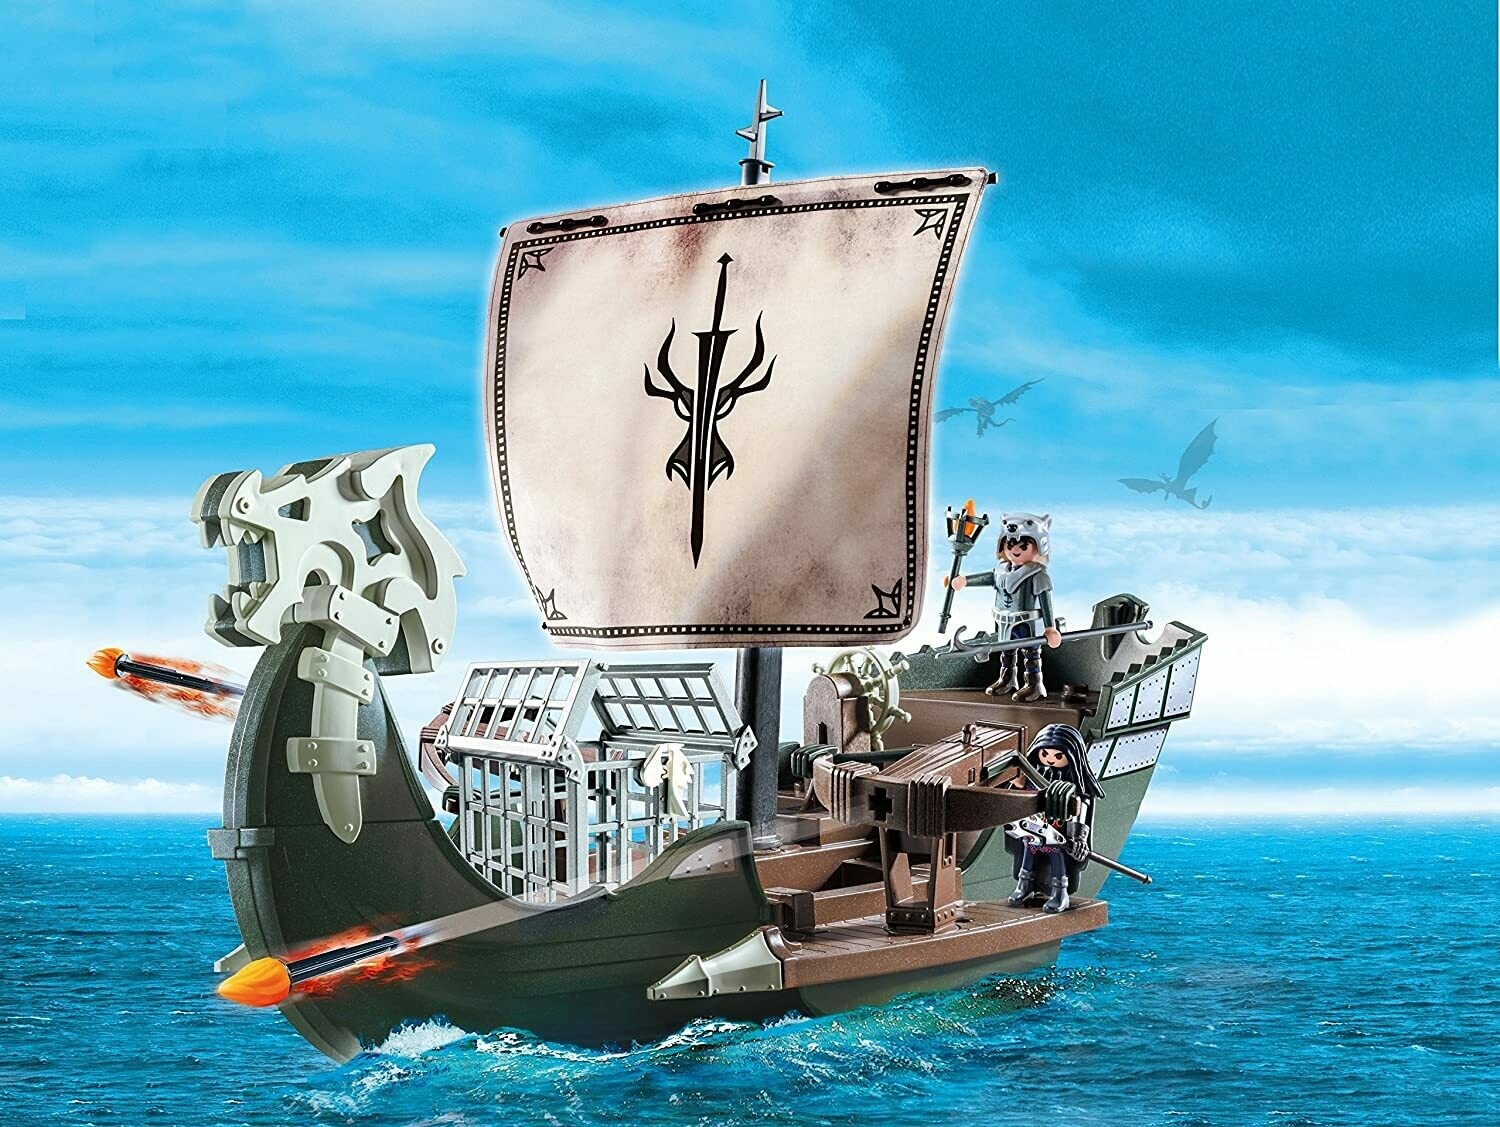 Playmobil; Drago's Ship (Discontinued)